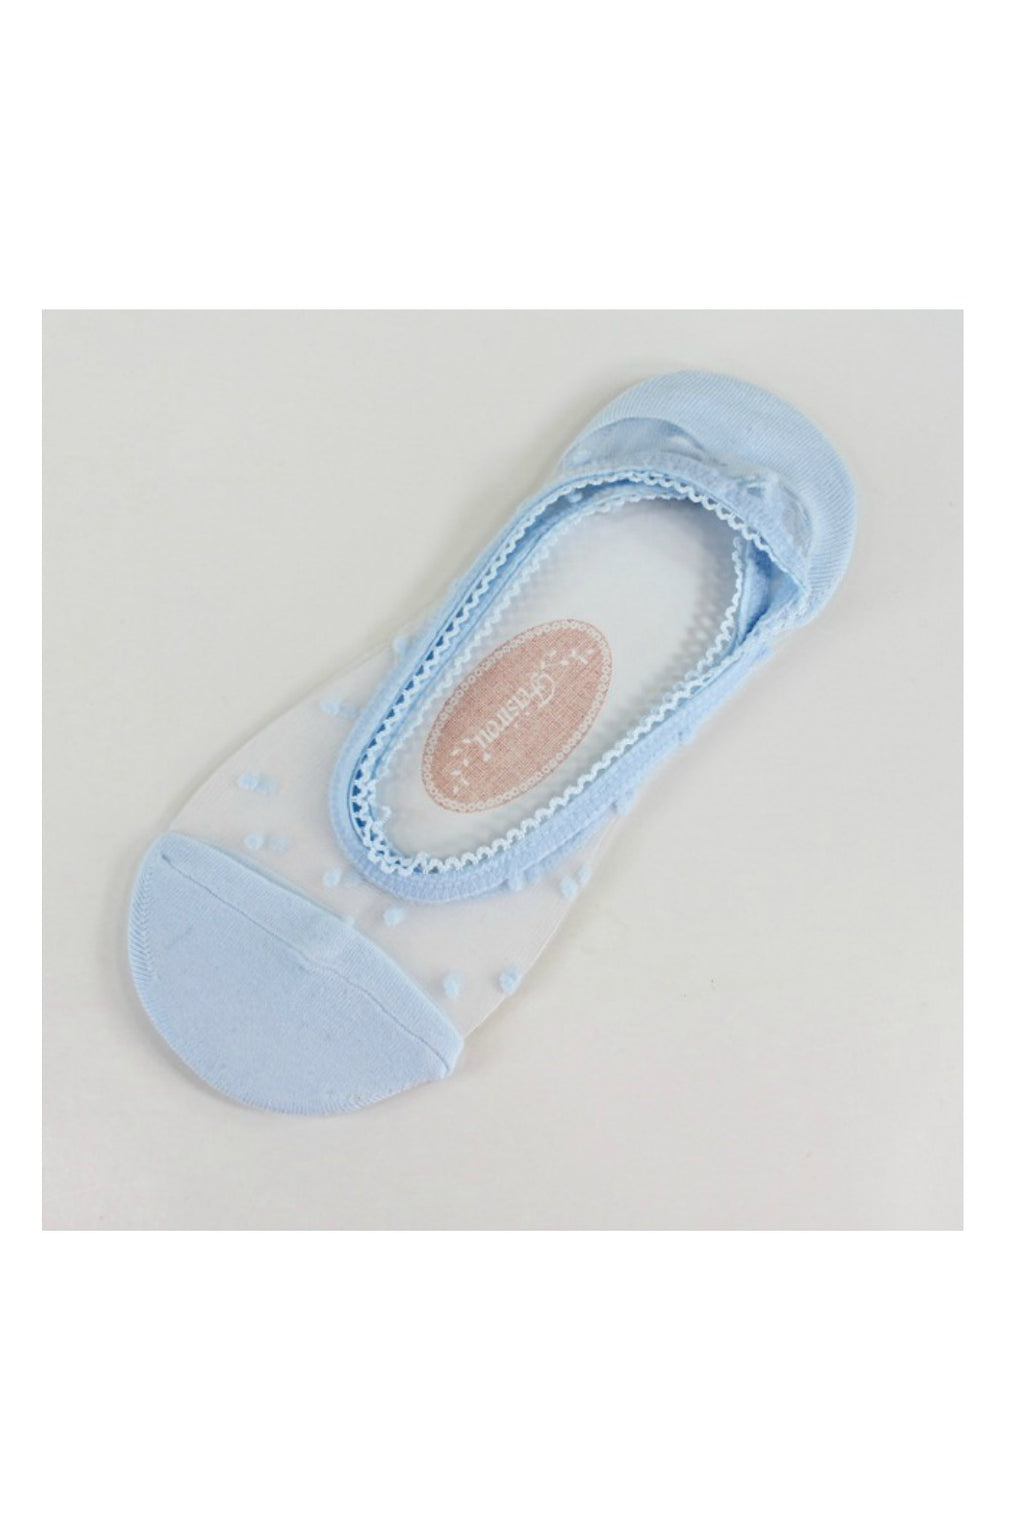 Pretty Persuasions Pebbles Slippers - Blue